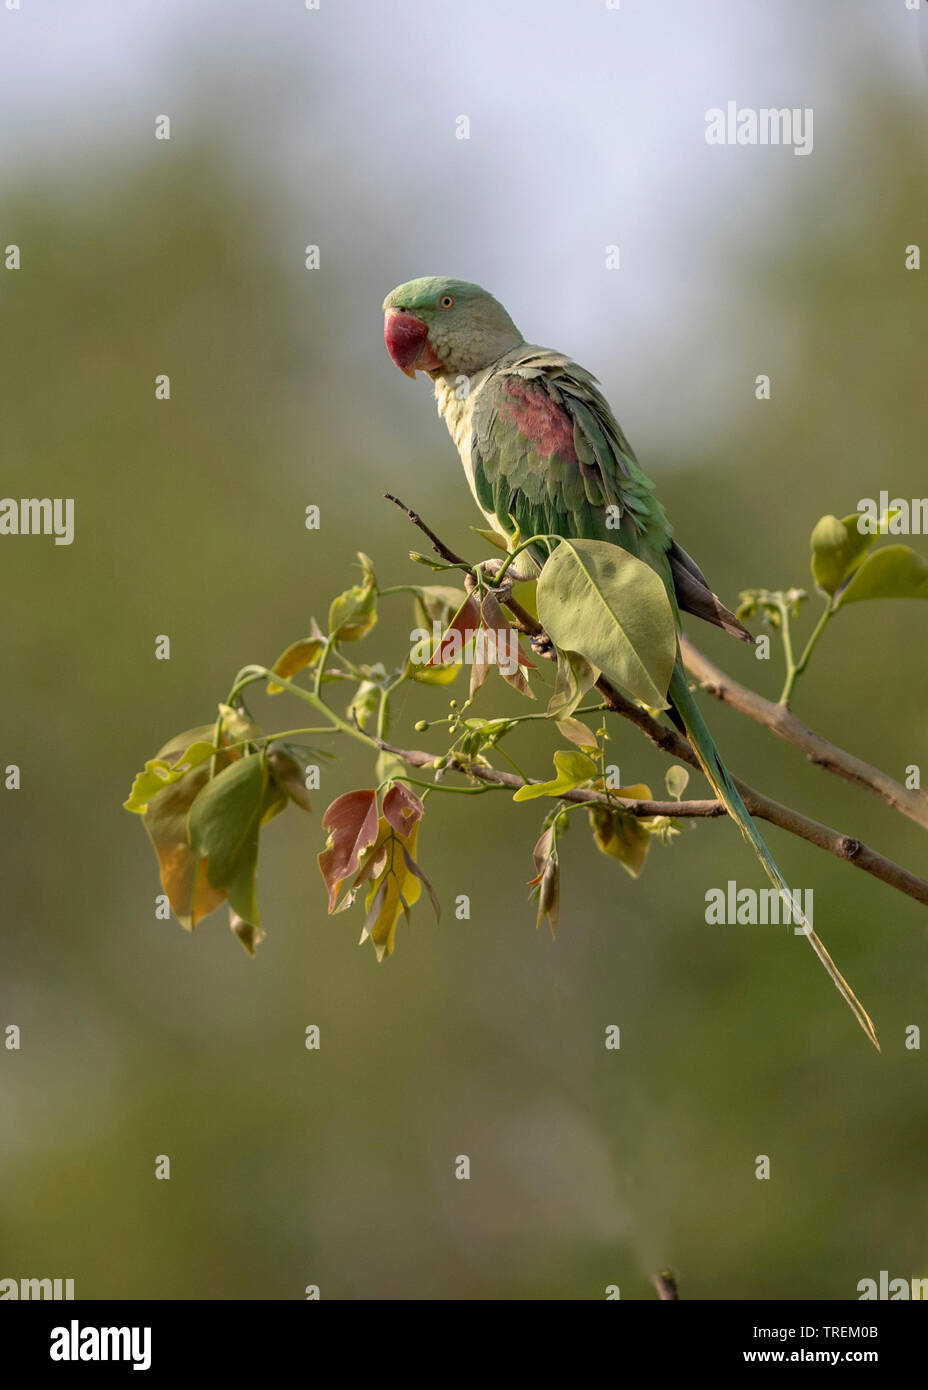 Alexandrine parakeet  also known as the Alexandrine parrot - Stock Image